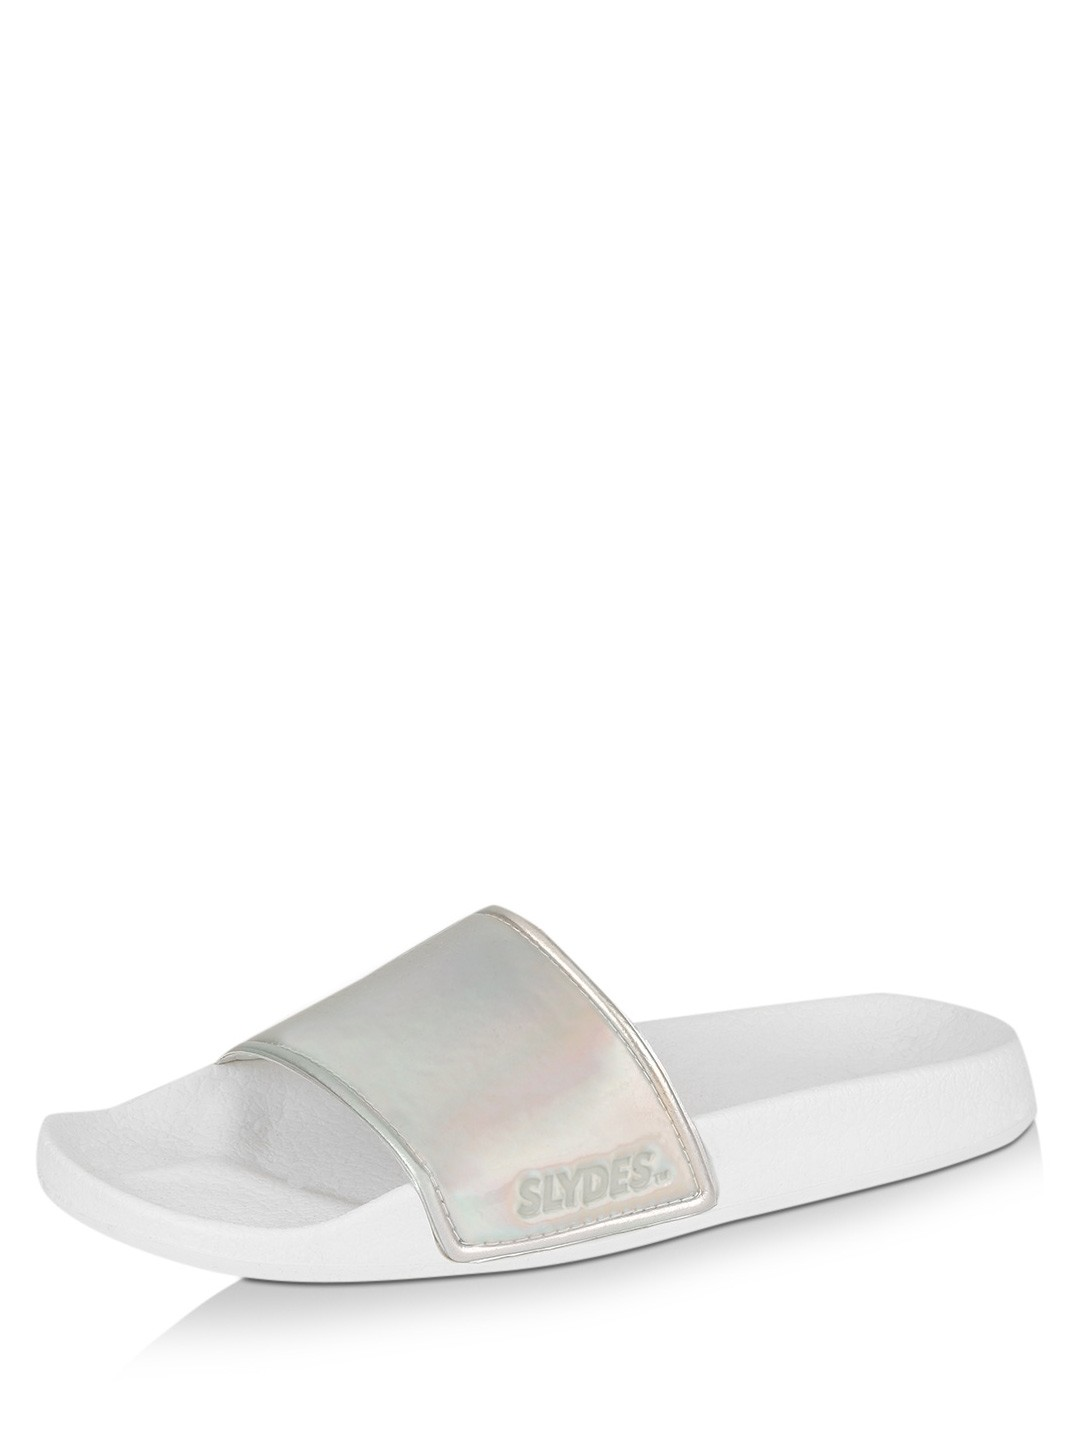 Buy Slydes IRRIDESCENT/WHITE Holographic Pool Sliders for Girls Online in India